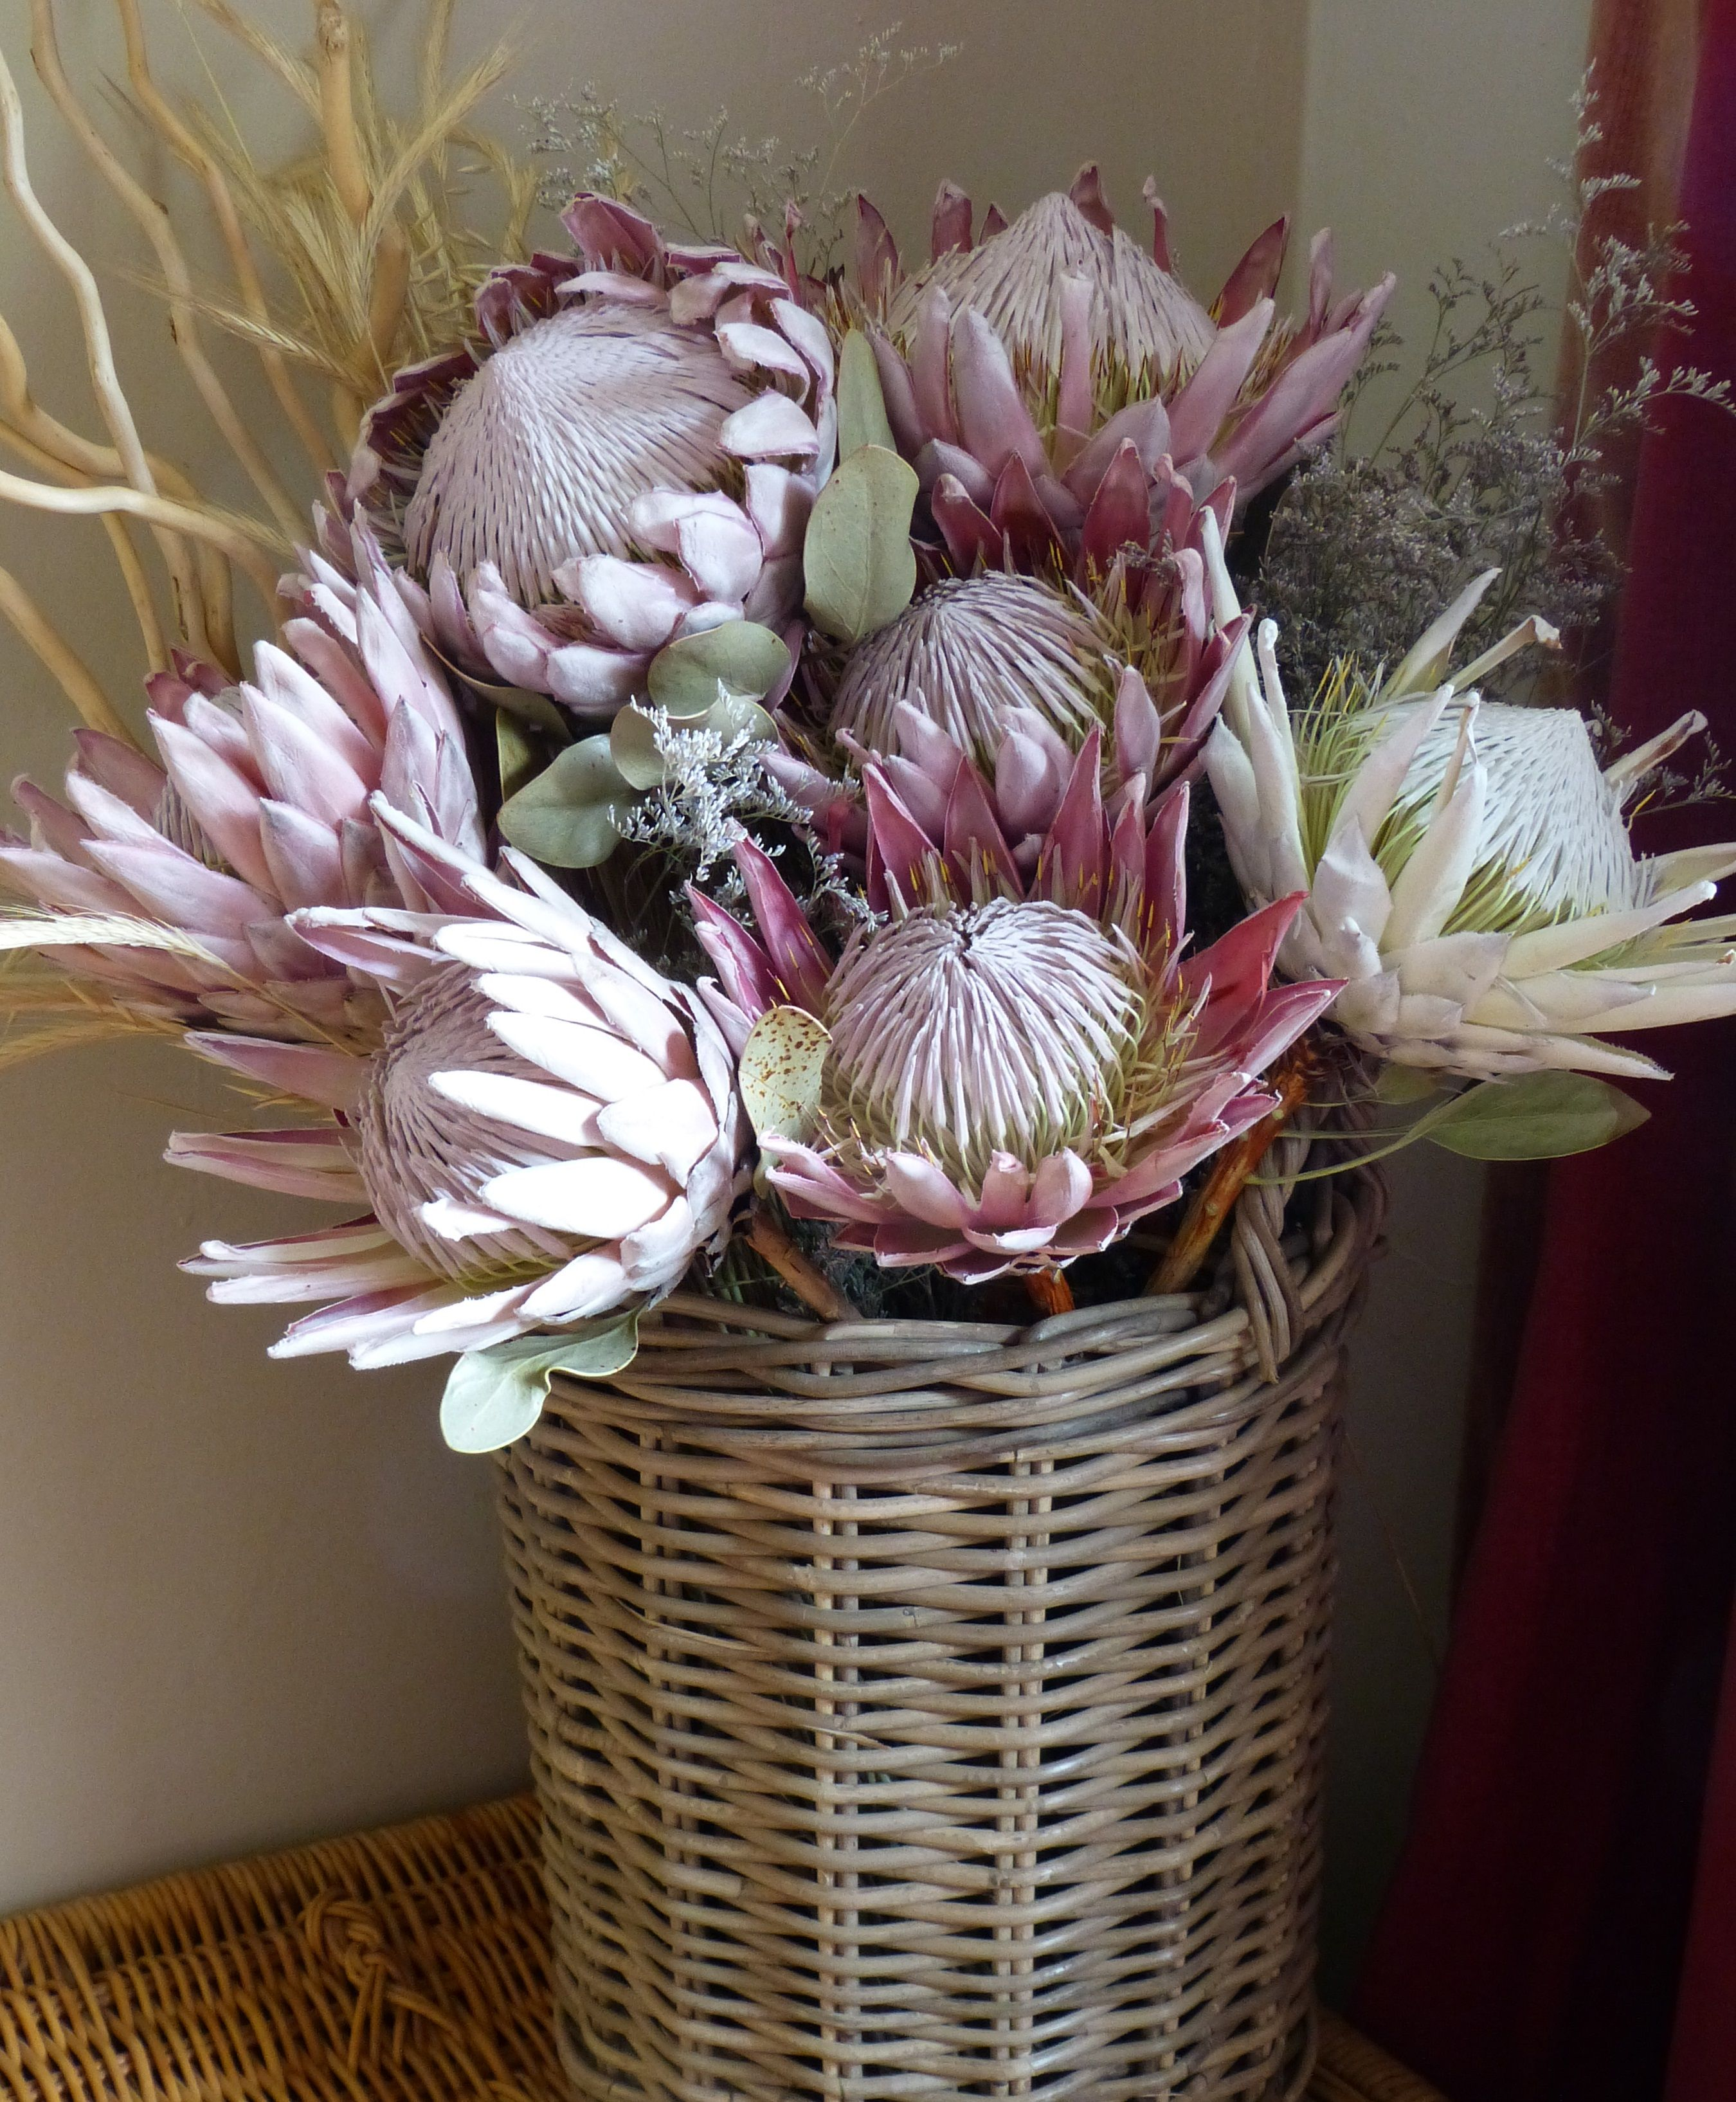 Outstanding King Proteas To Liven Up Your Entrance Hall Www Petalmania Co Za Freeze Dried Flowers Beautiful Floral Decor Dried Flowers